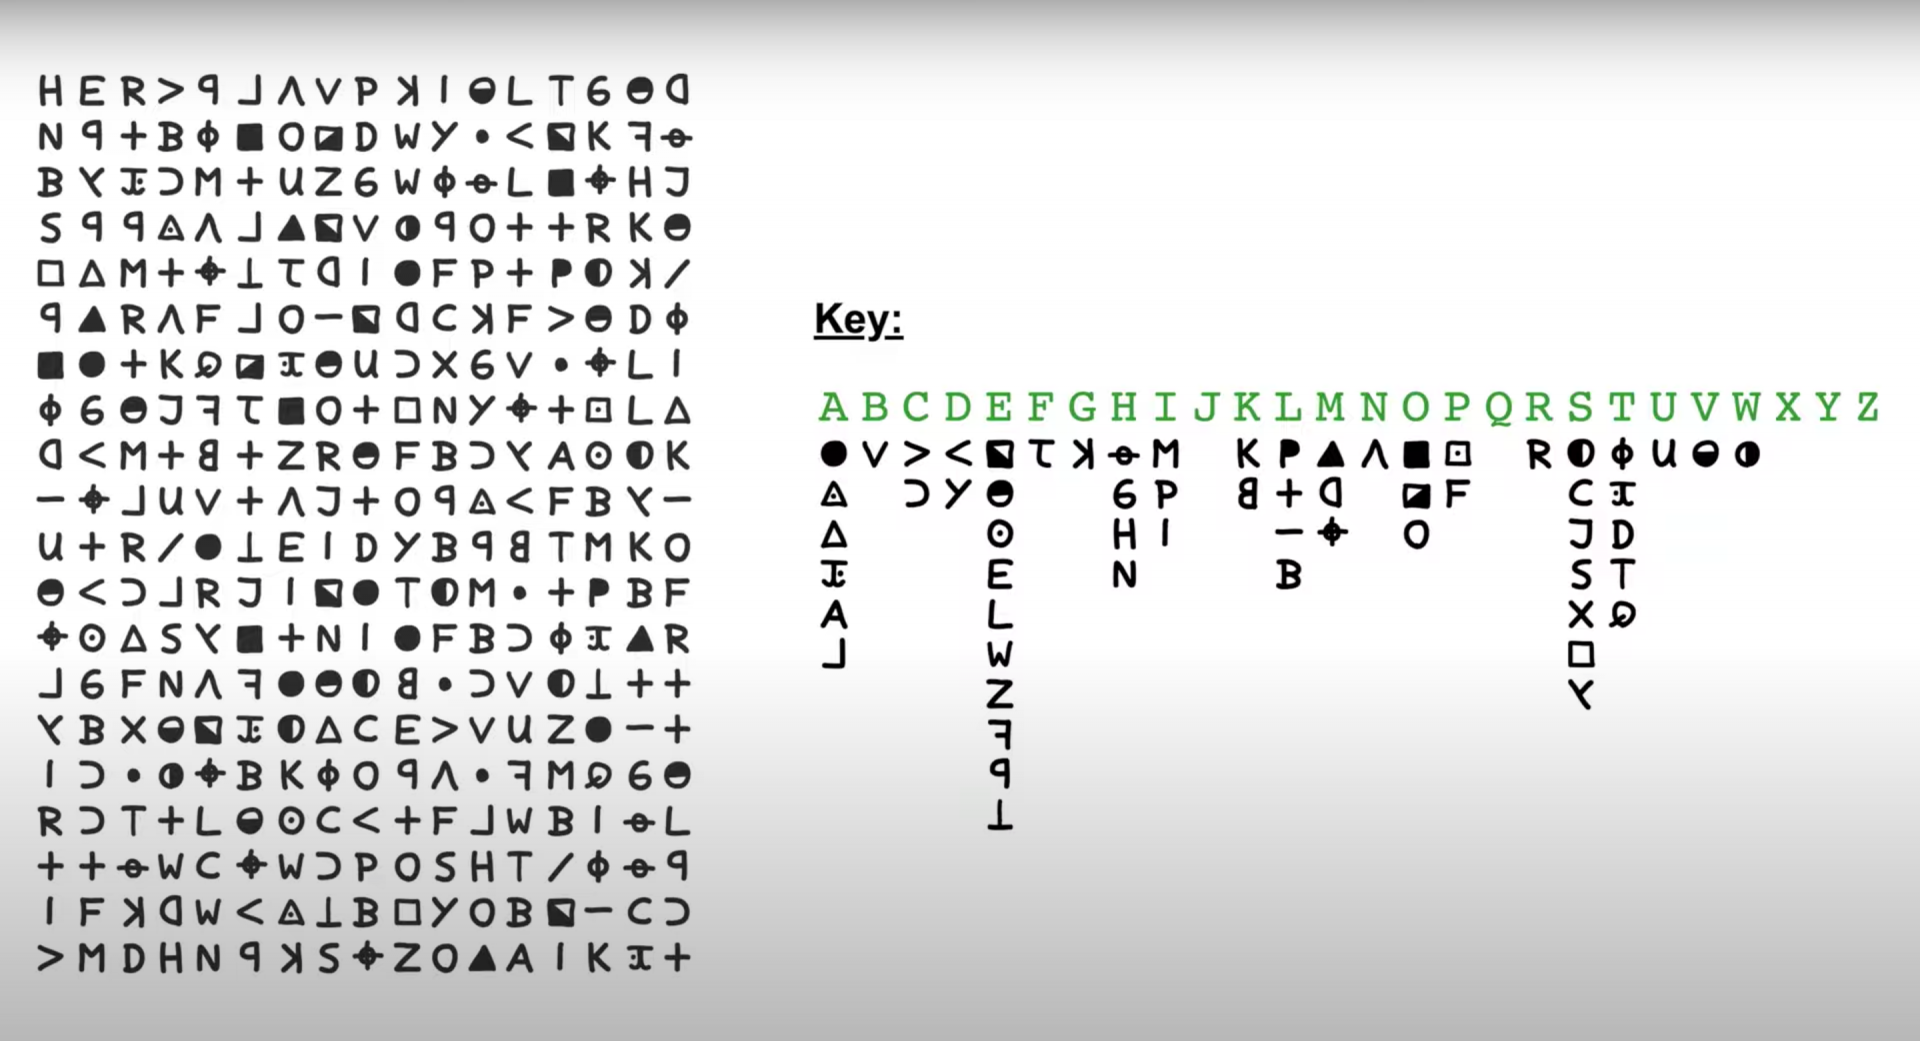 The Zodiac killer's infamous 340-character cipher